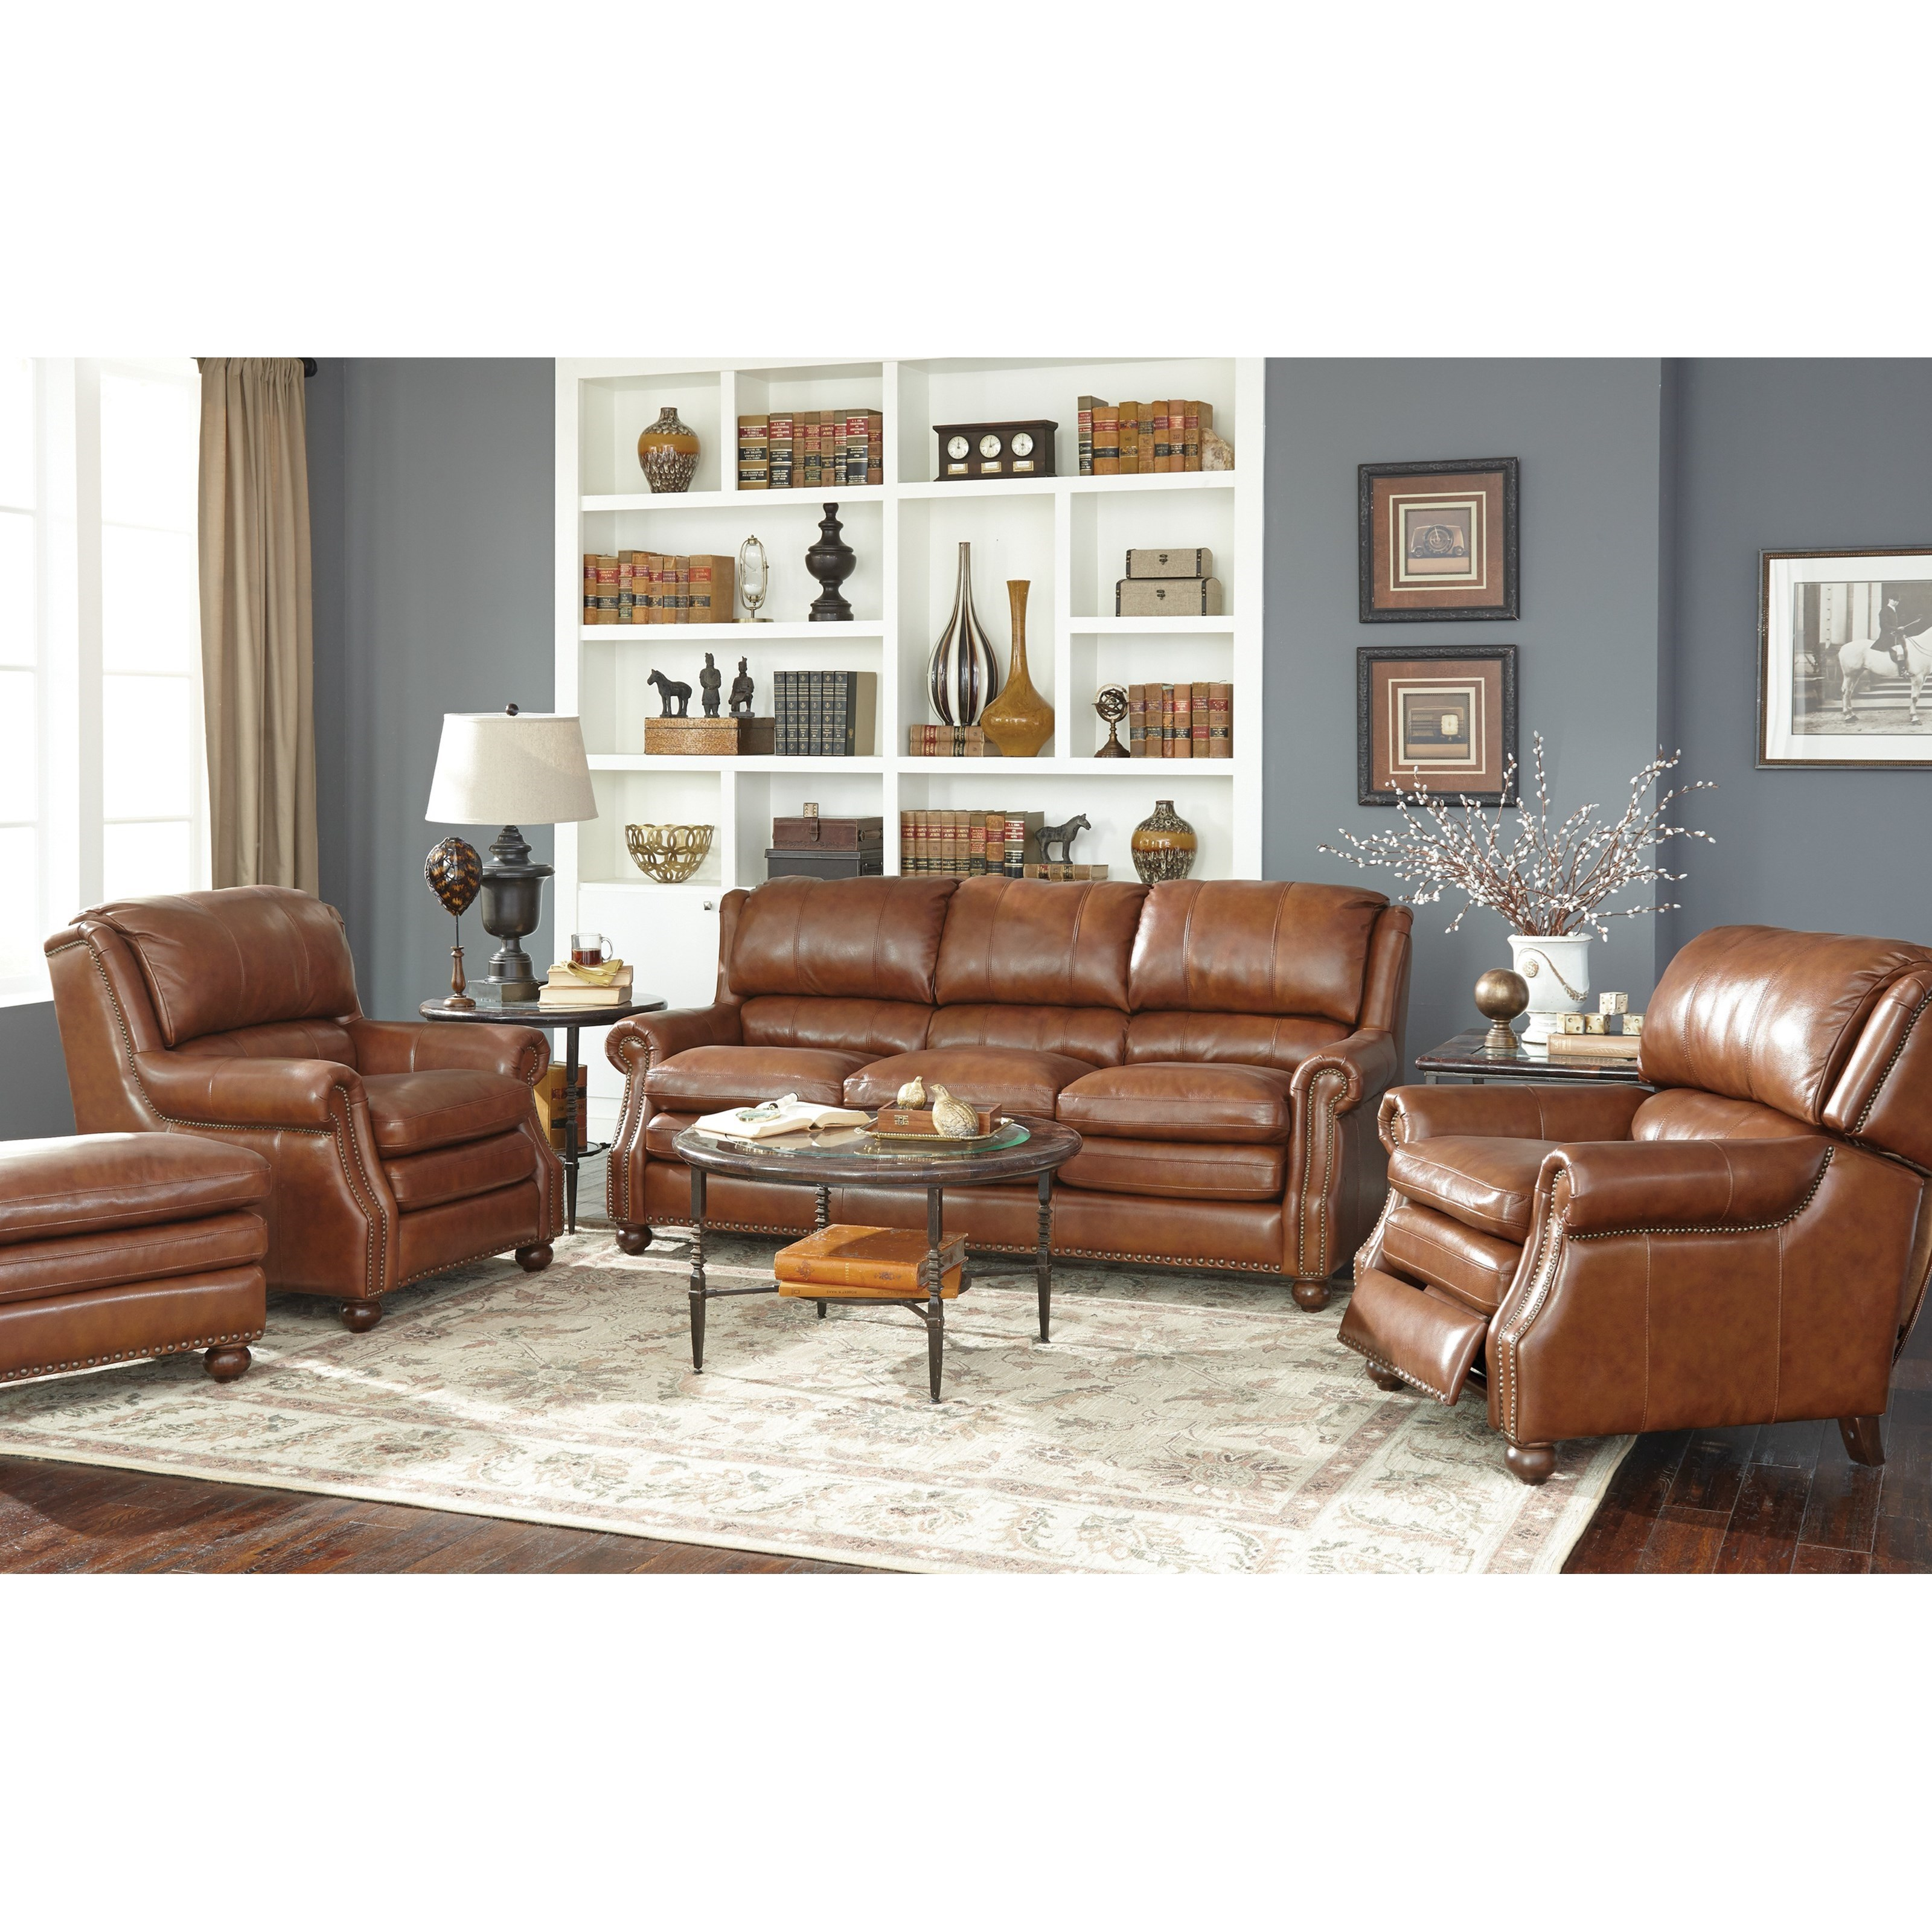 Craftmaster L1646 Living Room Group Jacksonville